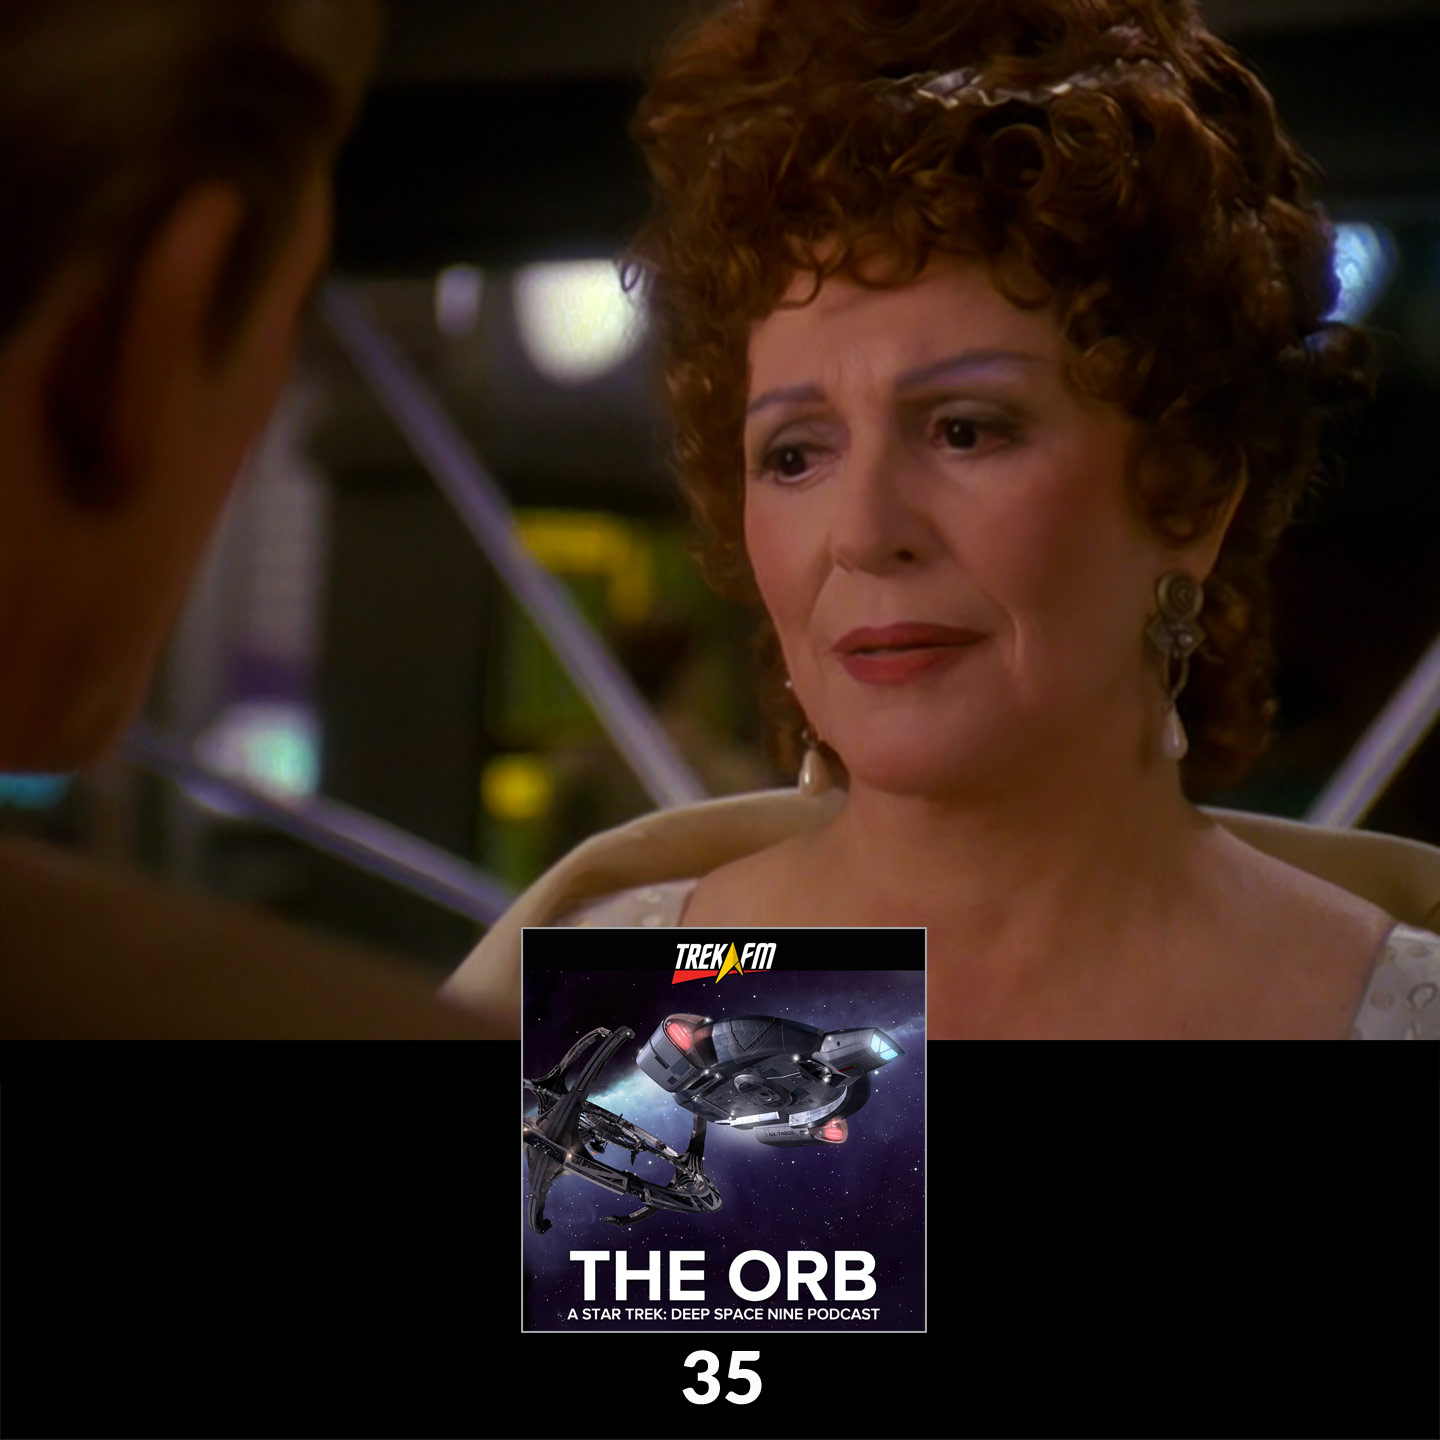 The Orb 35: The Most Awkward Make Out Scene Ever